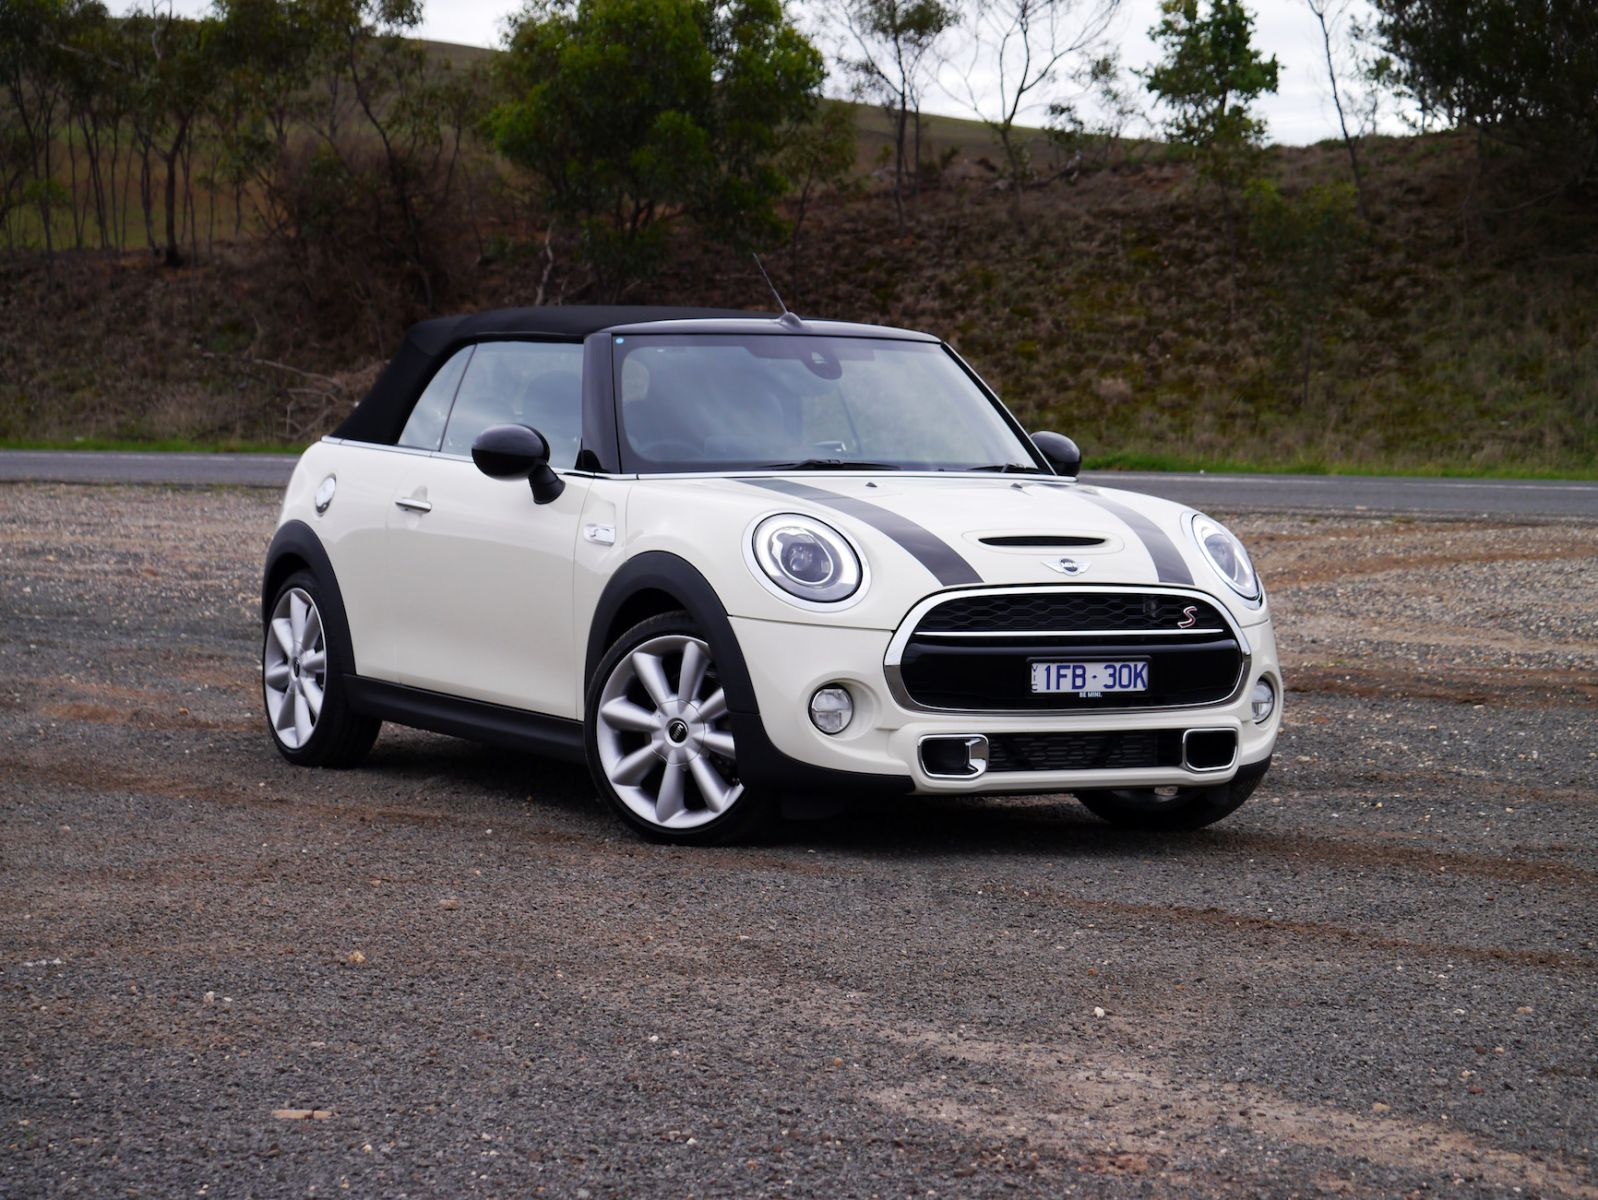 2016 MINI Cooper S Convertible REVIEW | Price slashed, But Fun-Factor Intact